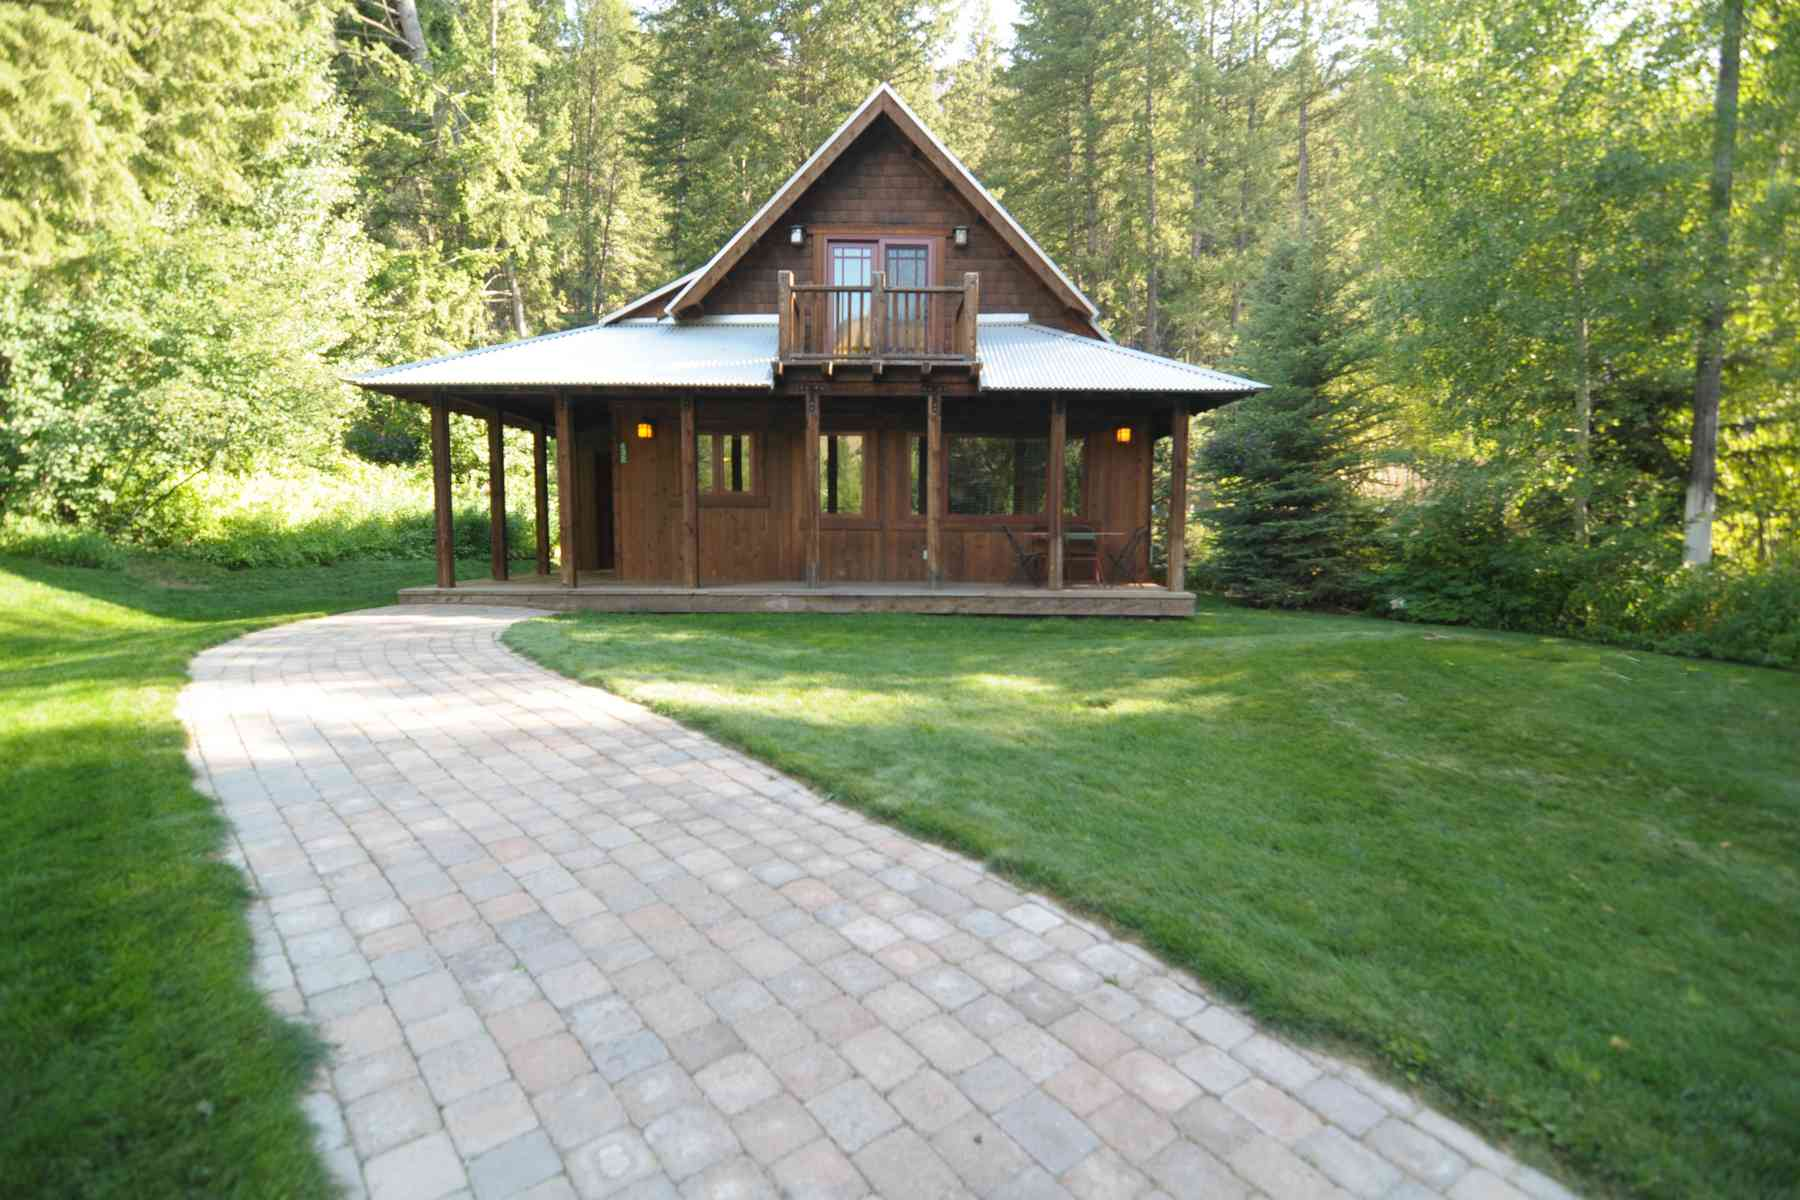 Single Family Home for Sale at Quaint Cabin In The Woods Ketchum, Idaho, 83340 United States